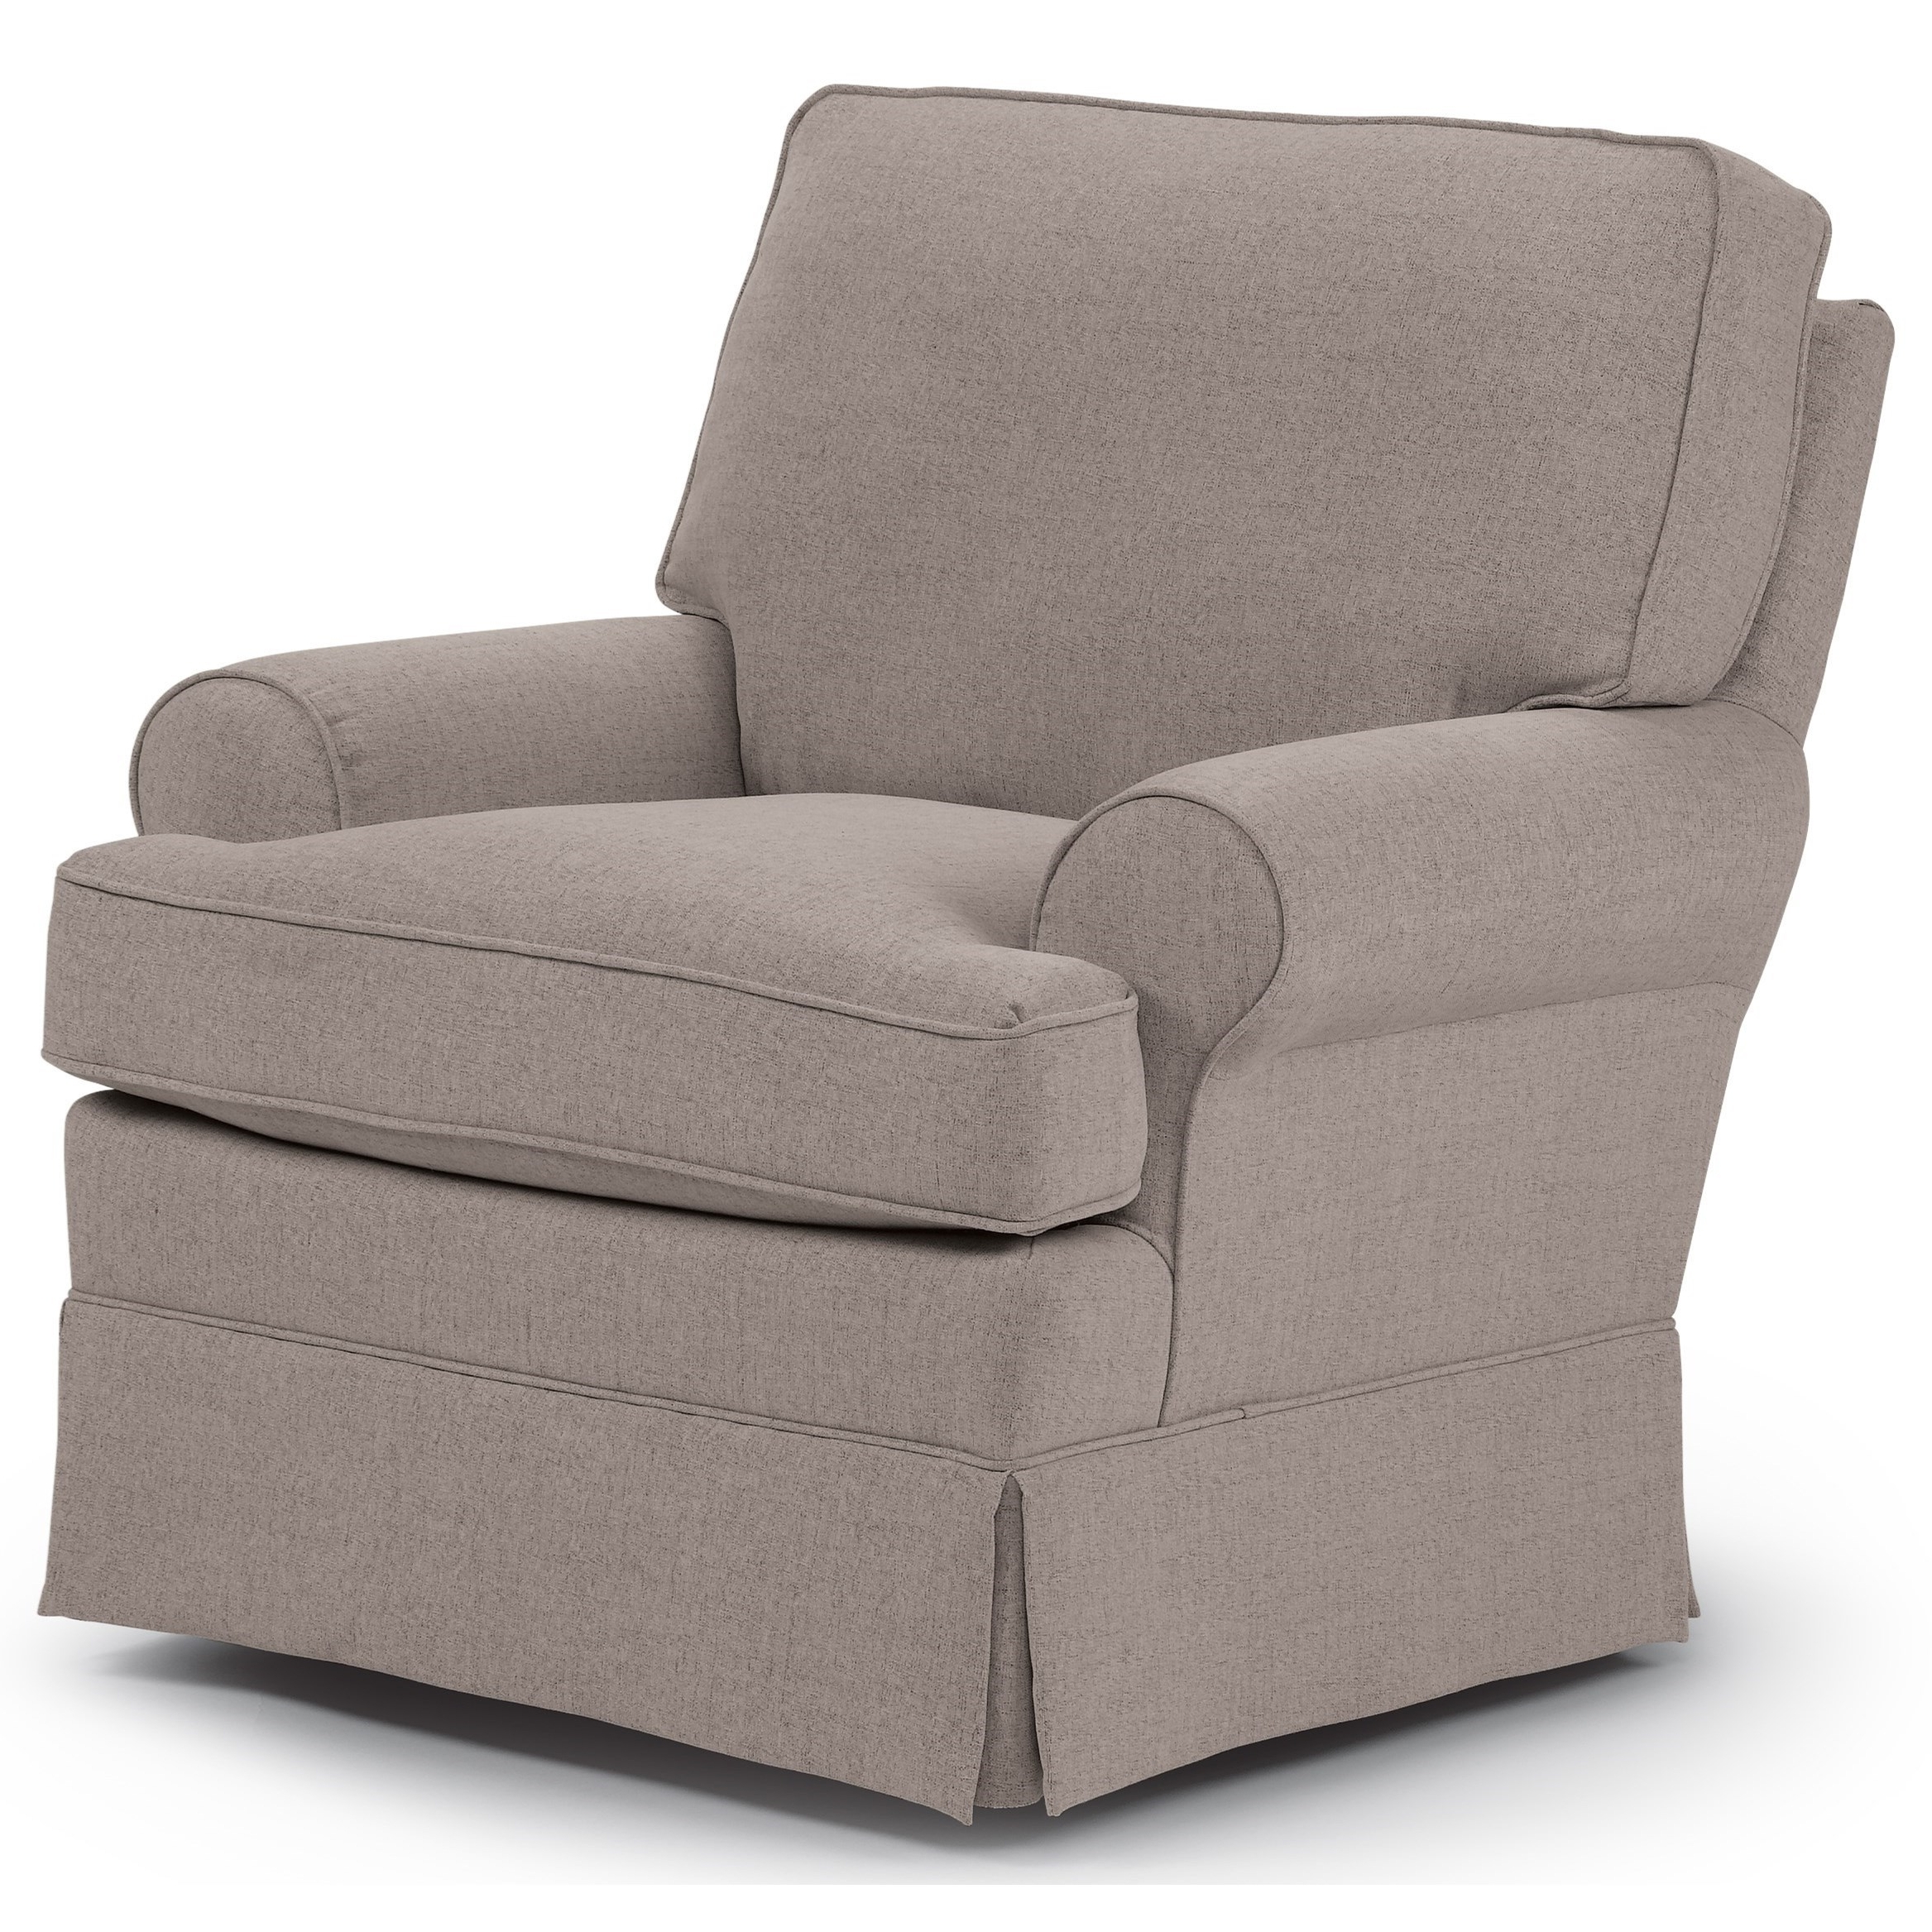 Swivel Rocking Chairs Within Well Liked Best Home Furnishings Swivel Glide Chairs Quinn Swivel Glider Chair (View 3 of 15)